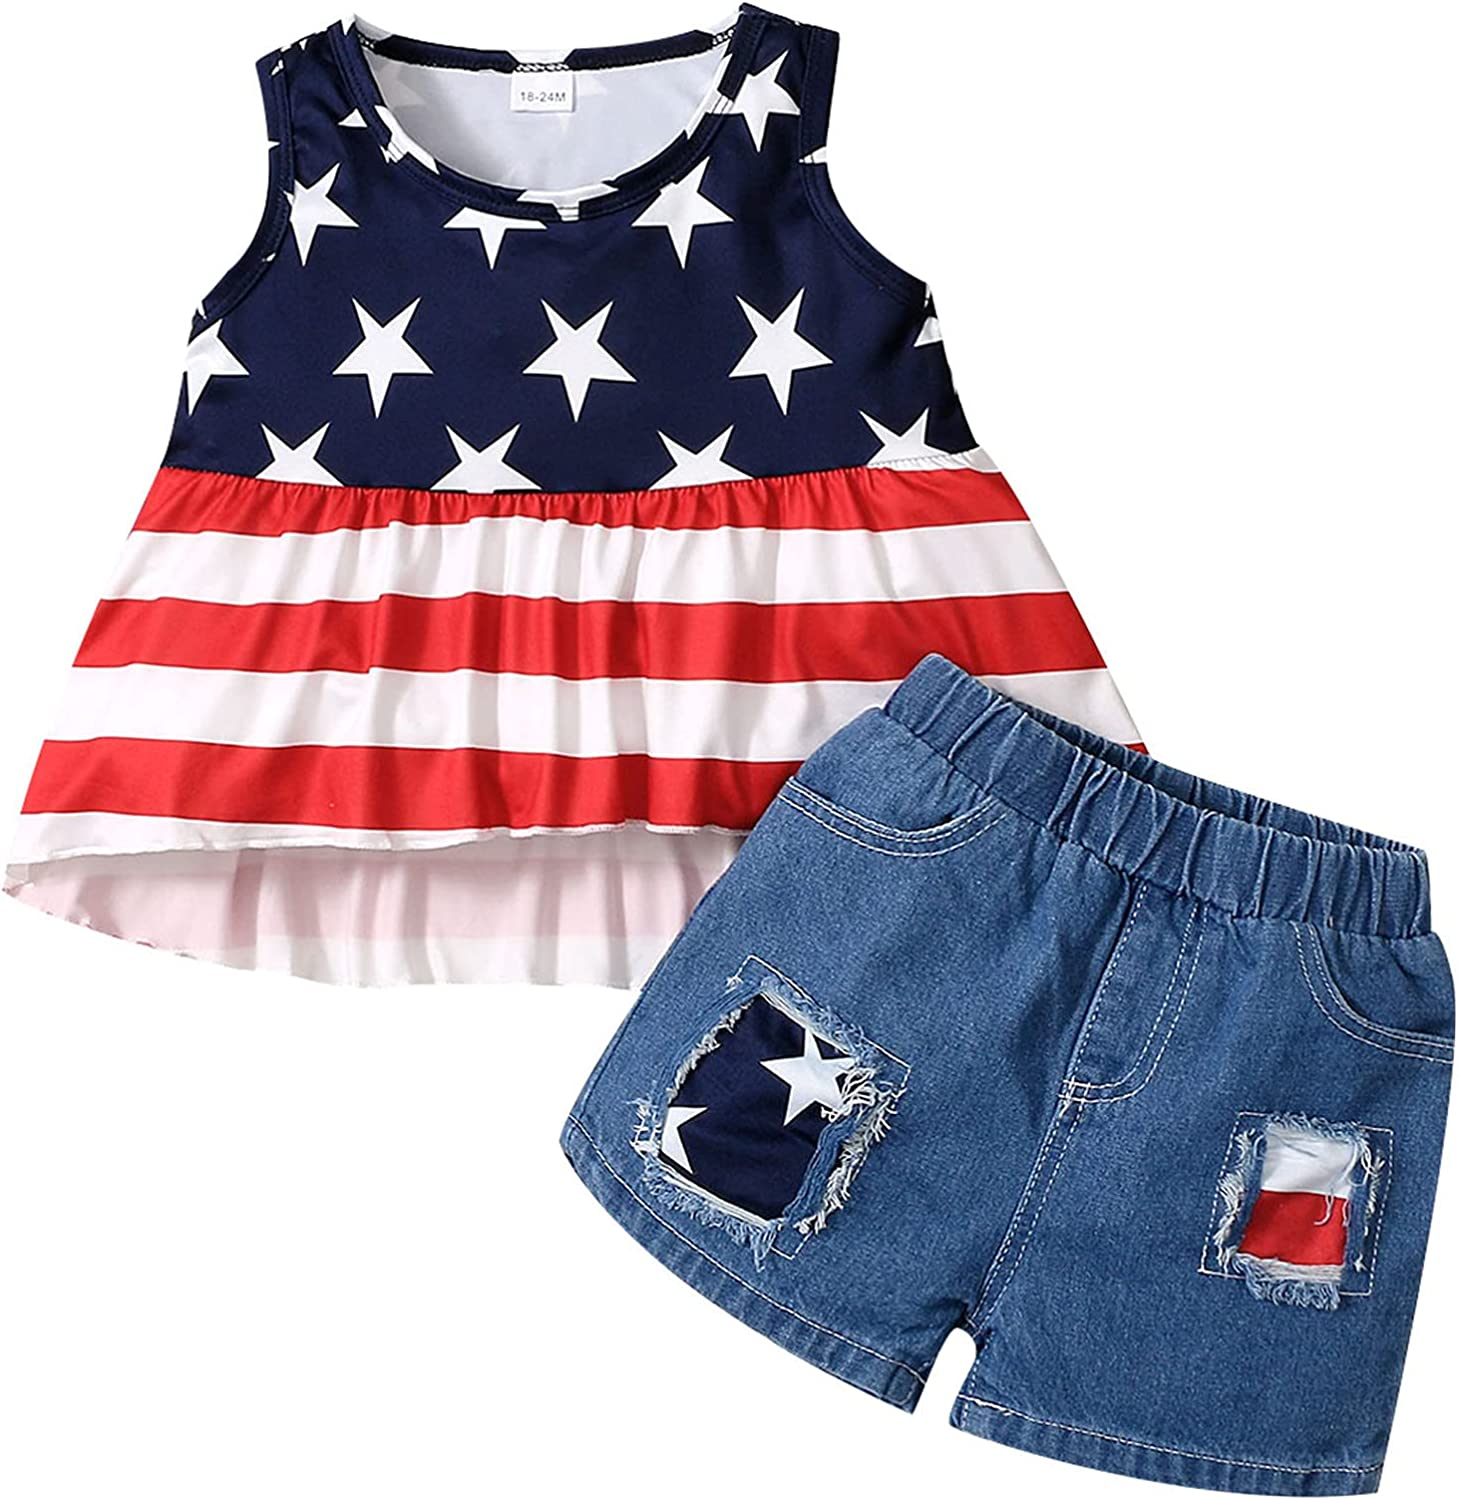 Dedication ROMPERINBOX 4th of July Toddler Baby Boy Clo Outfits Cash special price Summer Girl